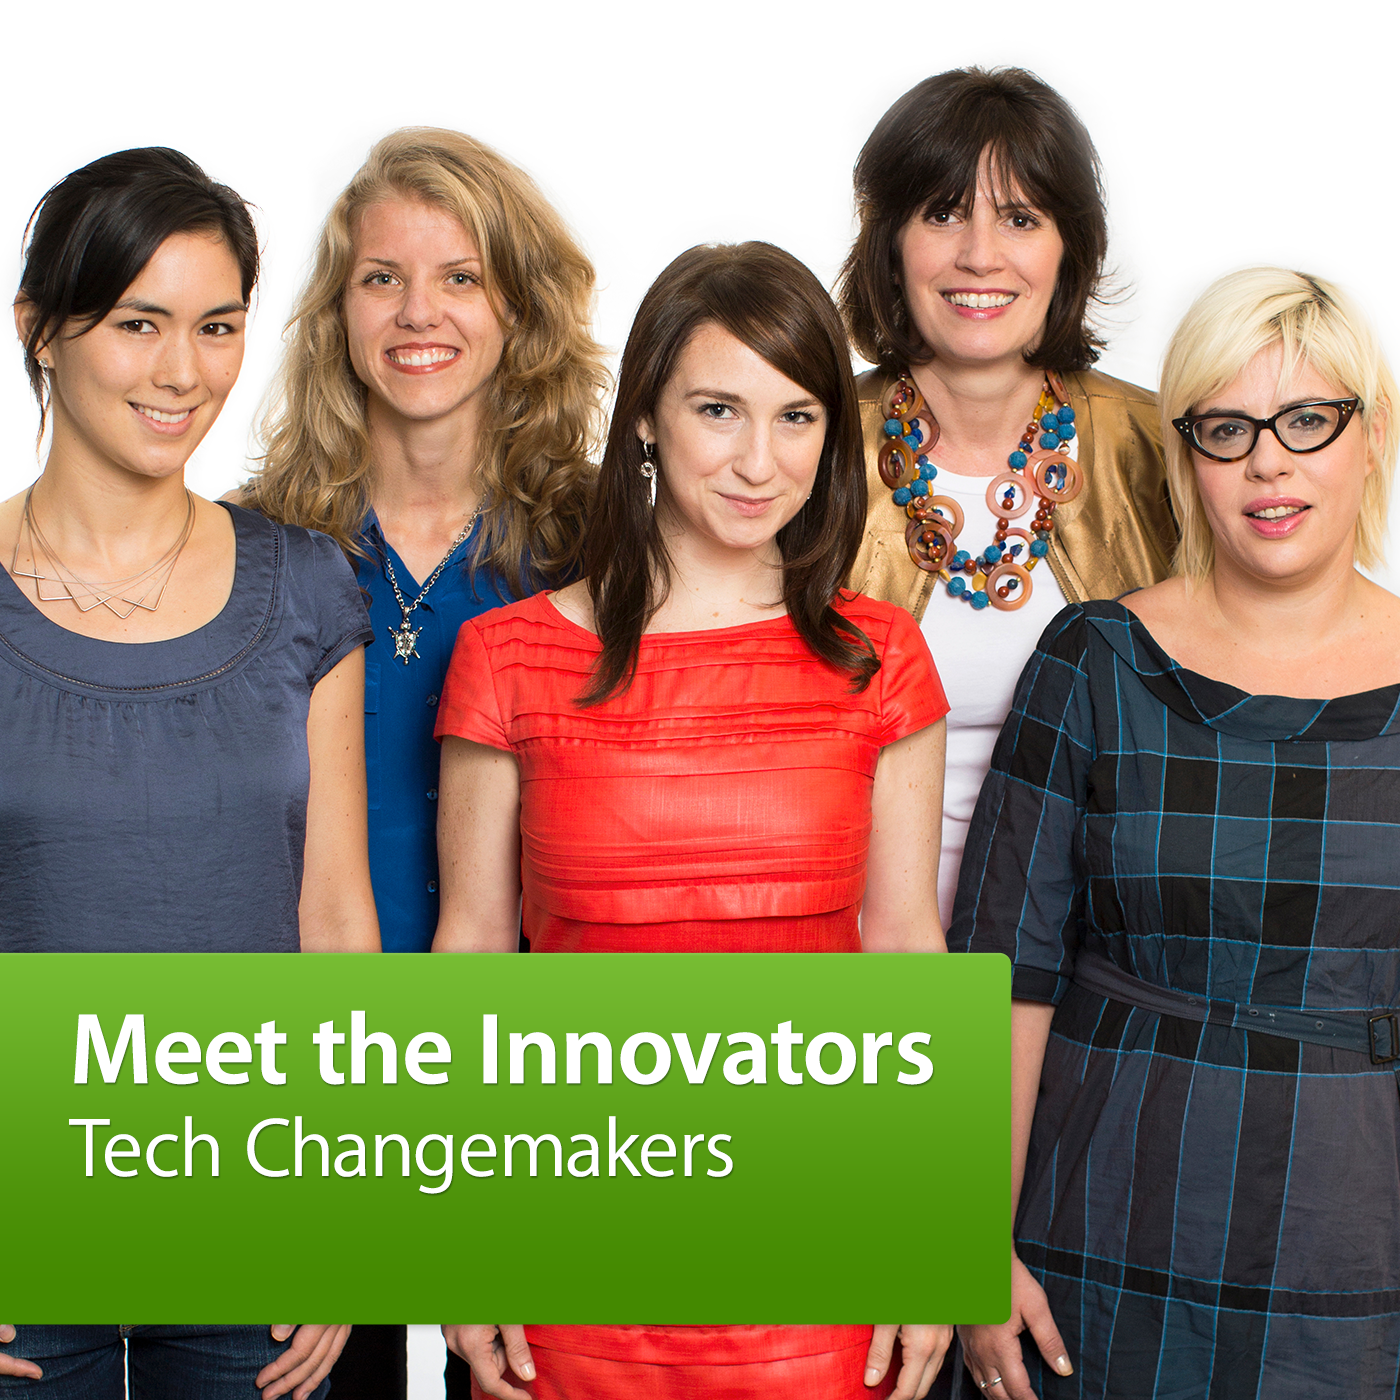 Tech Changemakers: Meet the Innovators